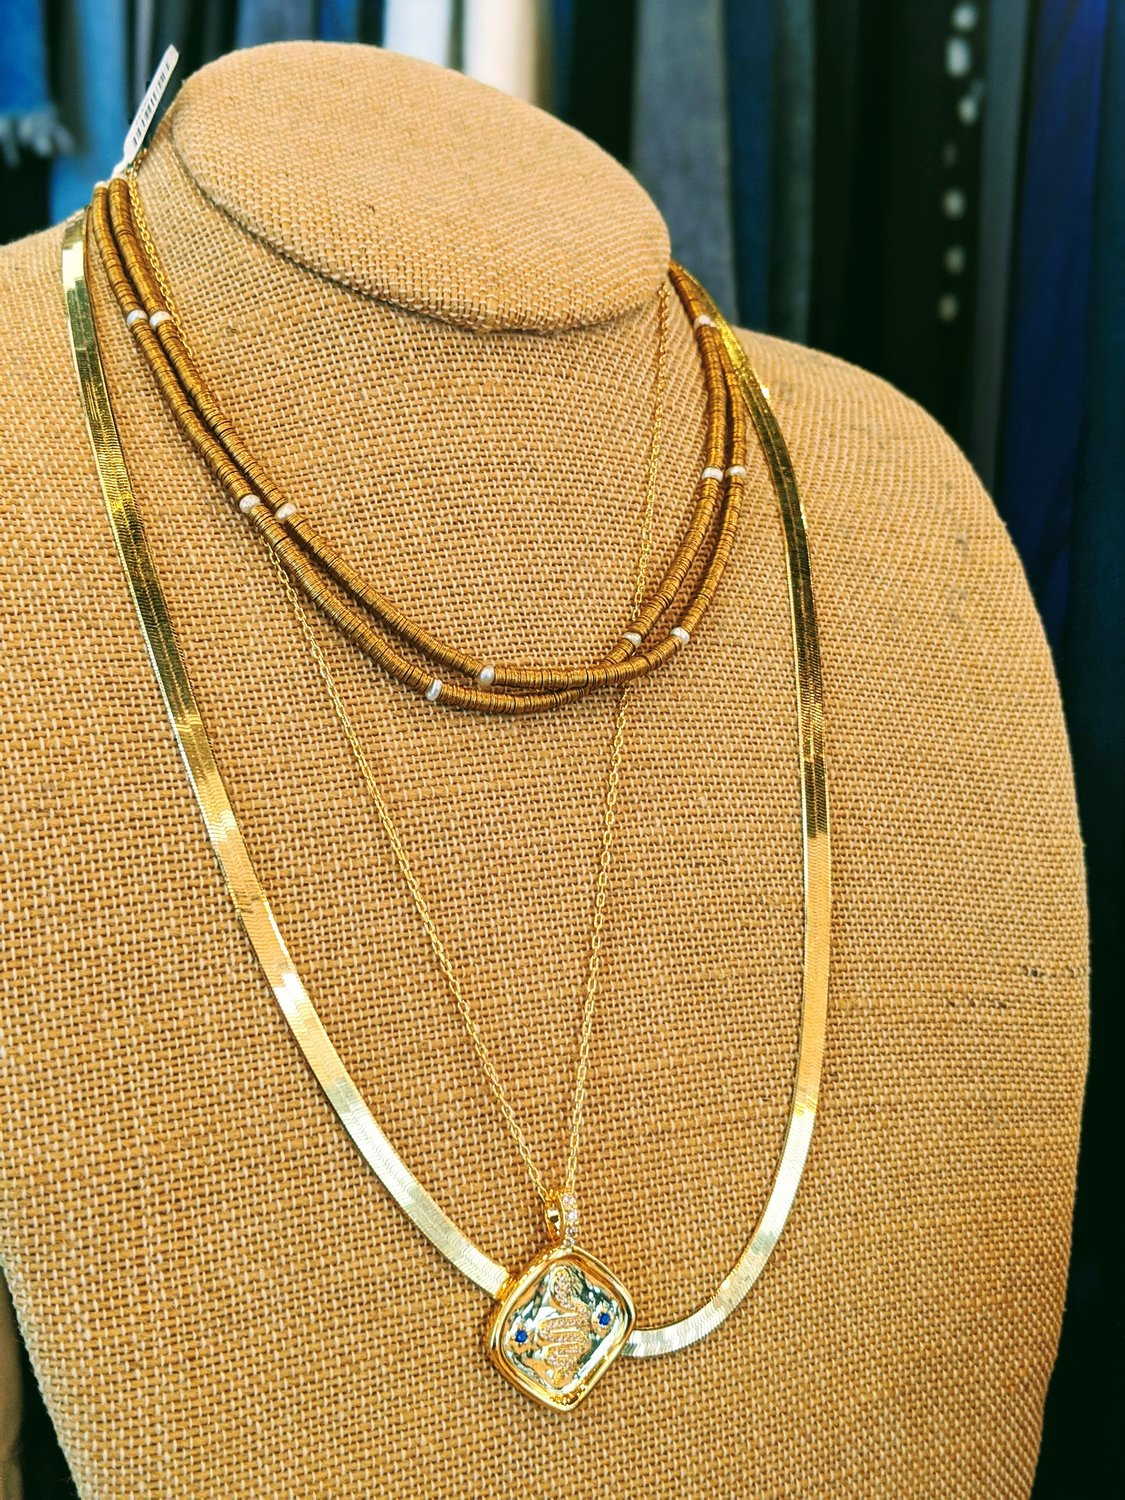 4-	Assorted gold necklaces by Serefina at Penelope T